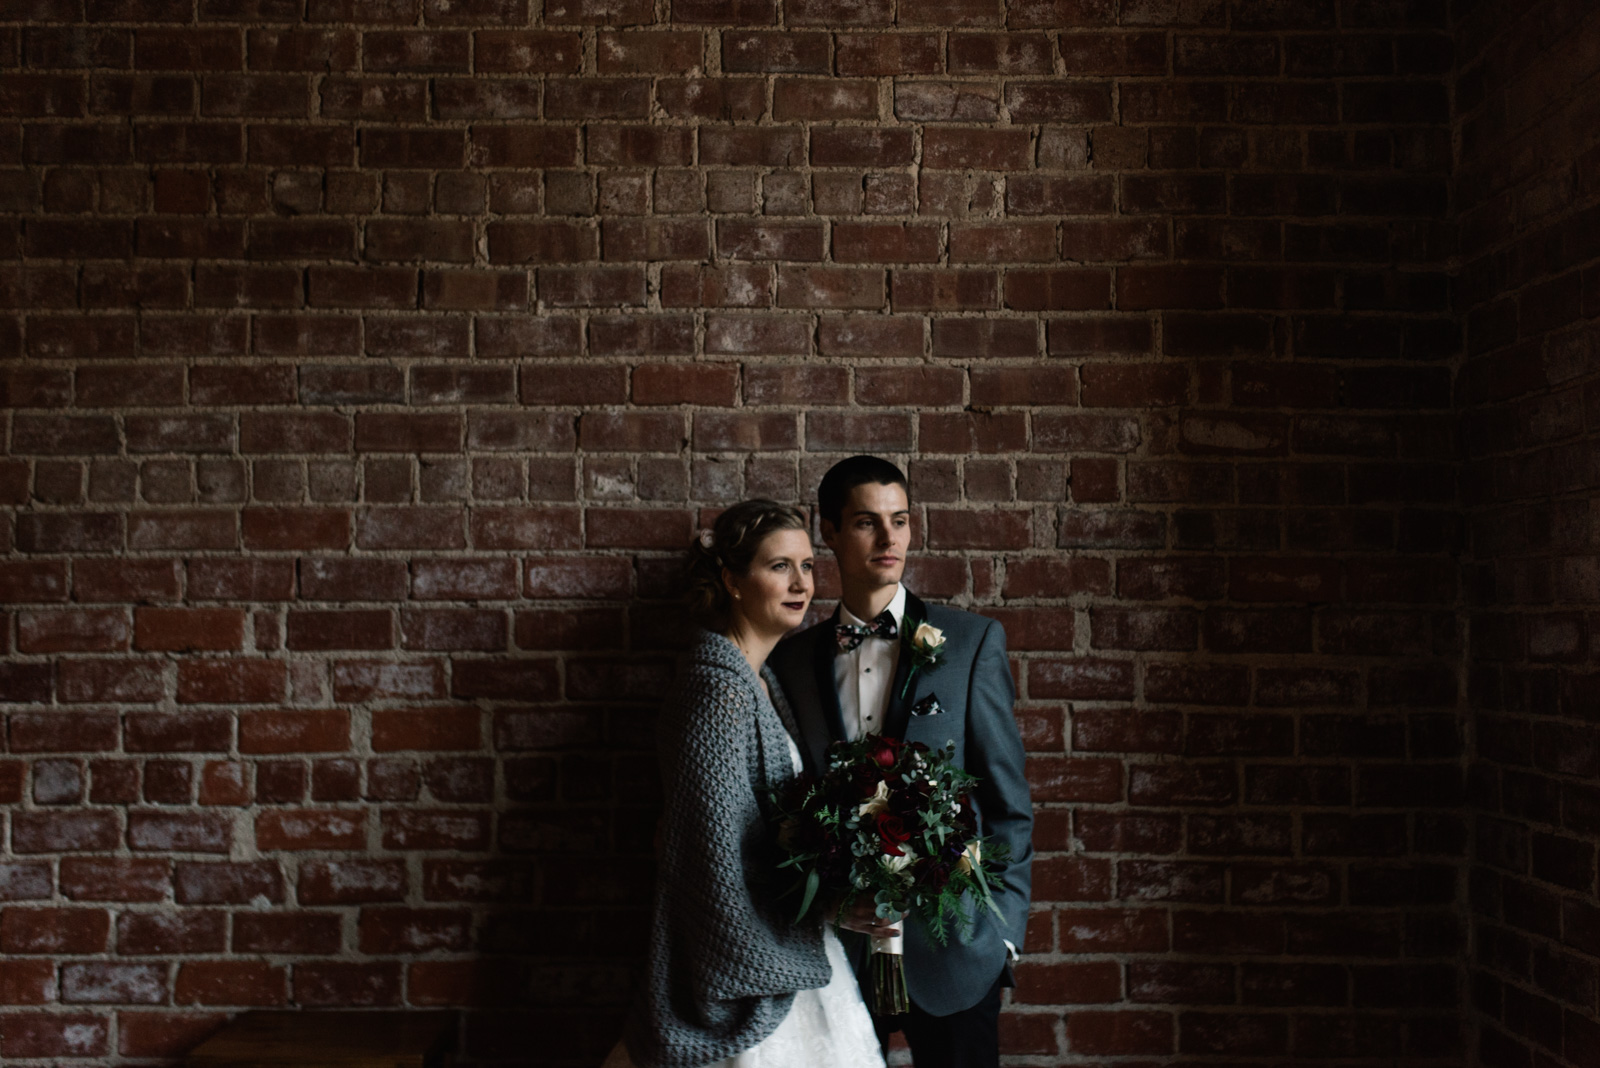 bride and groom next to brick wall black sheep social club winter wedding